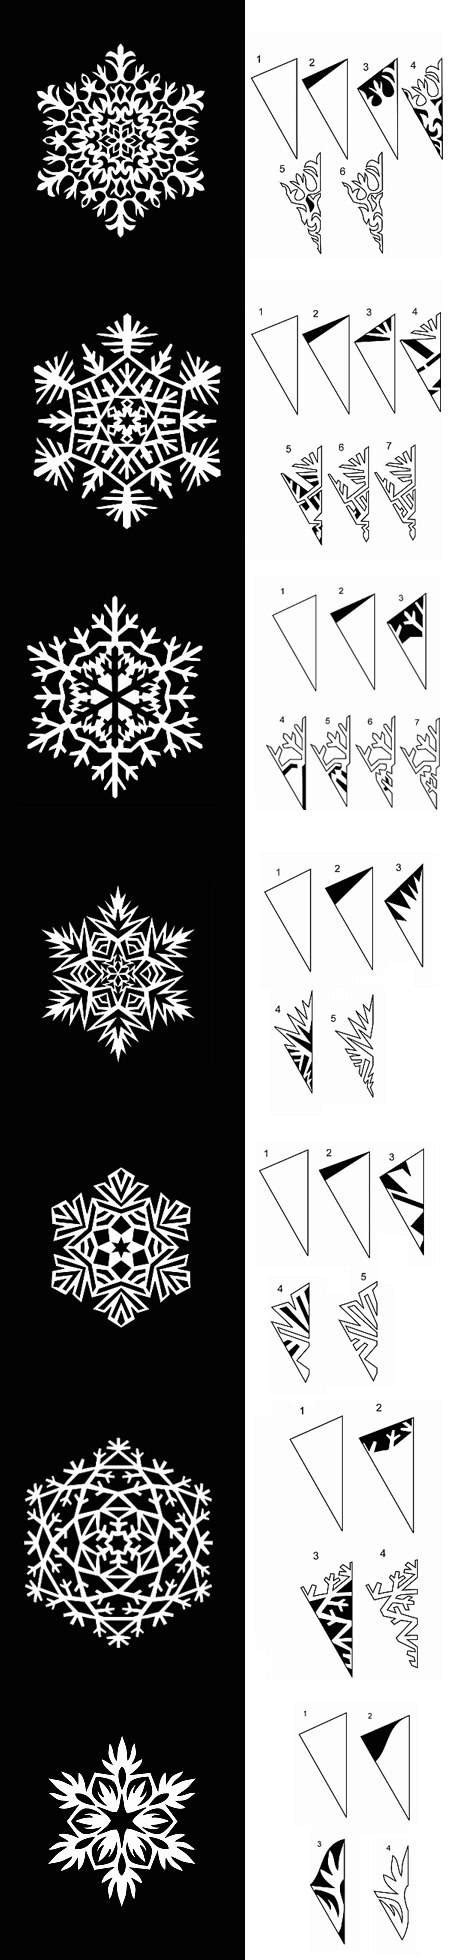 diy paper snowflakes templates diy projects usefuldiycom